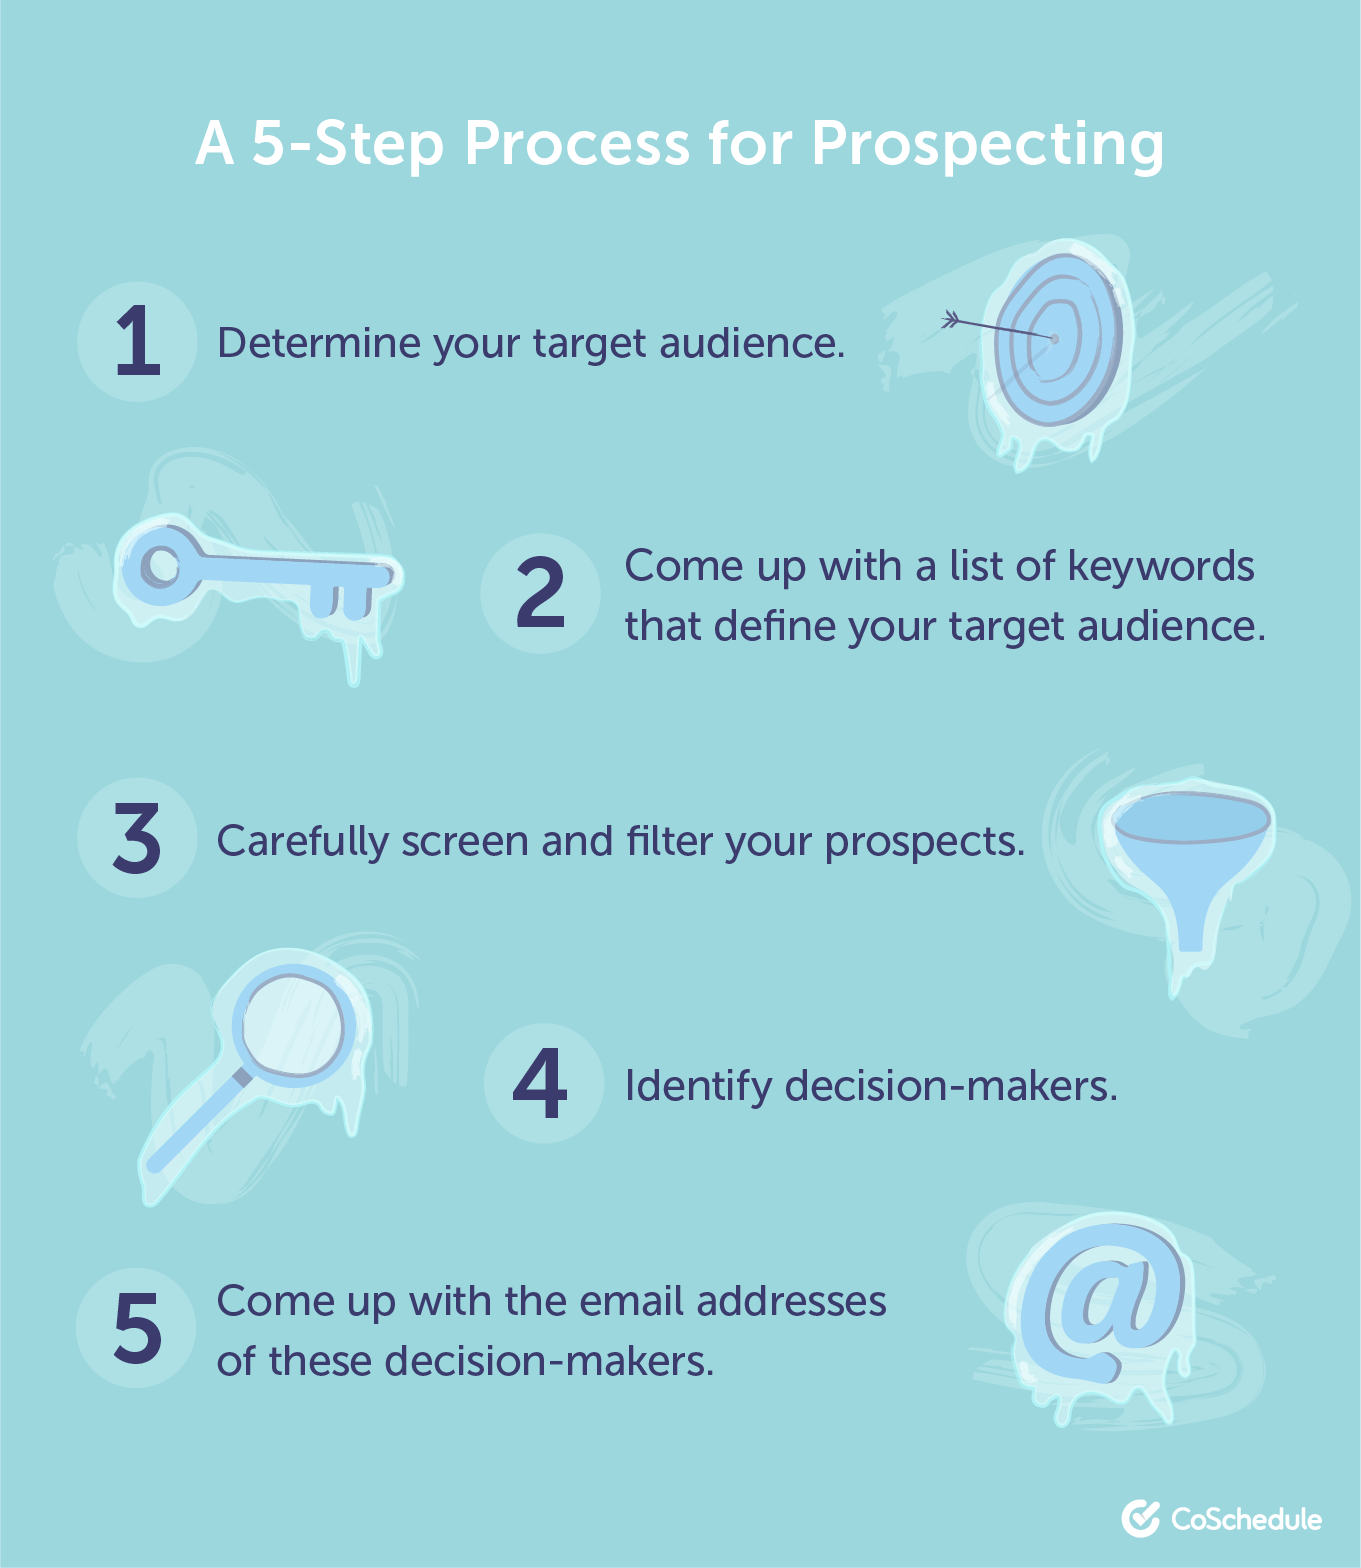 5-step process to prospecting